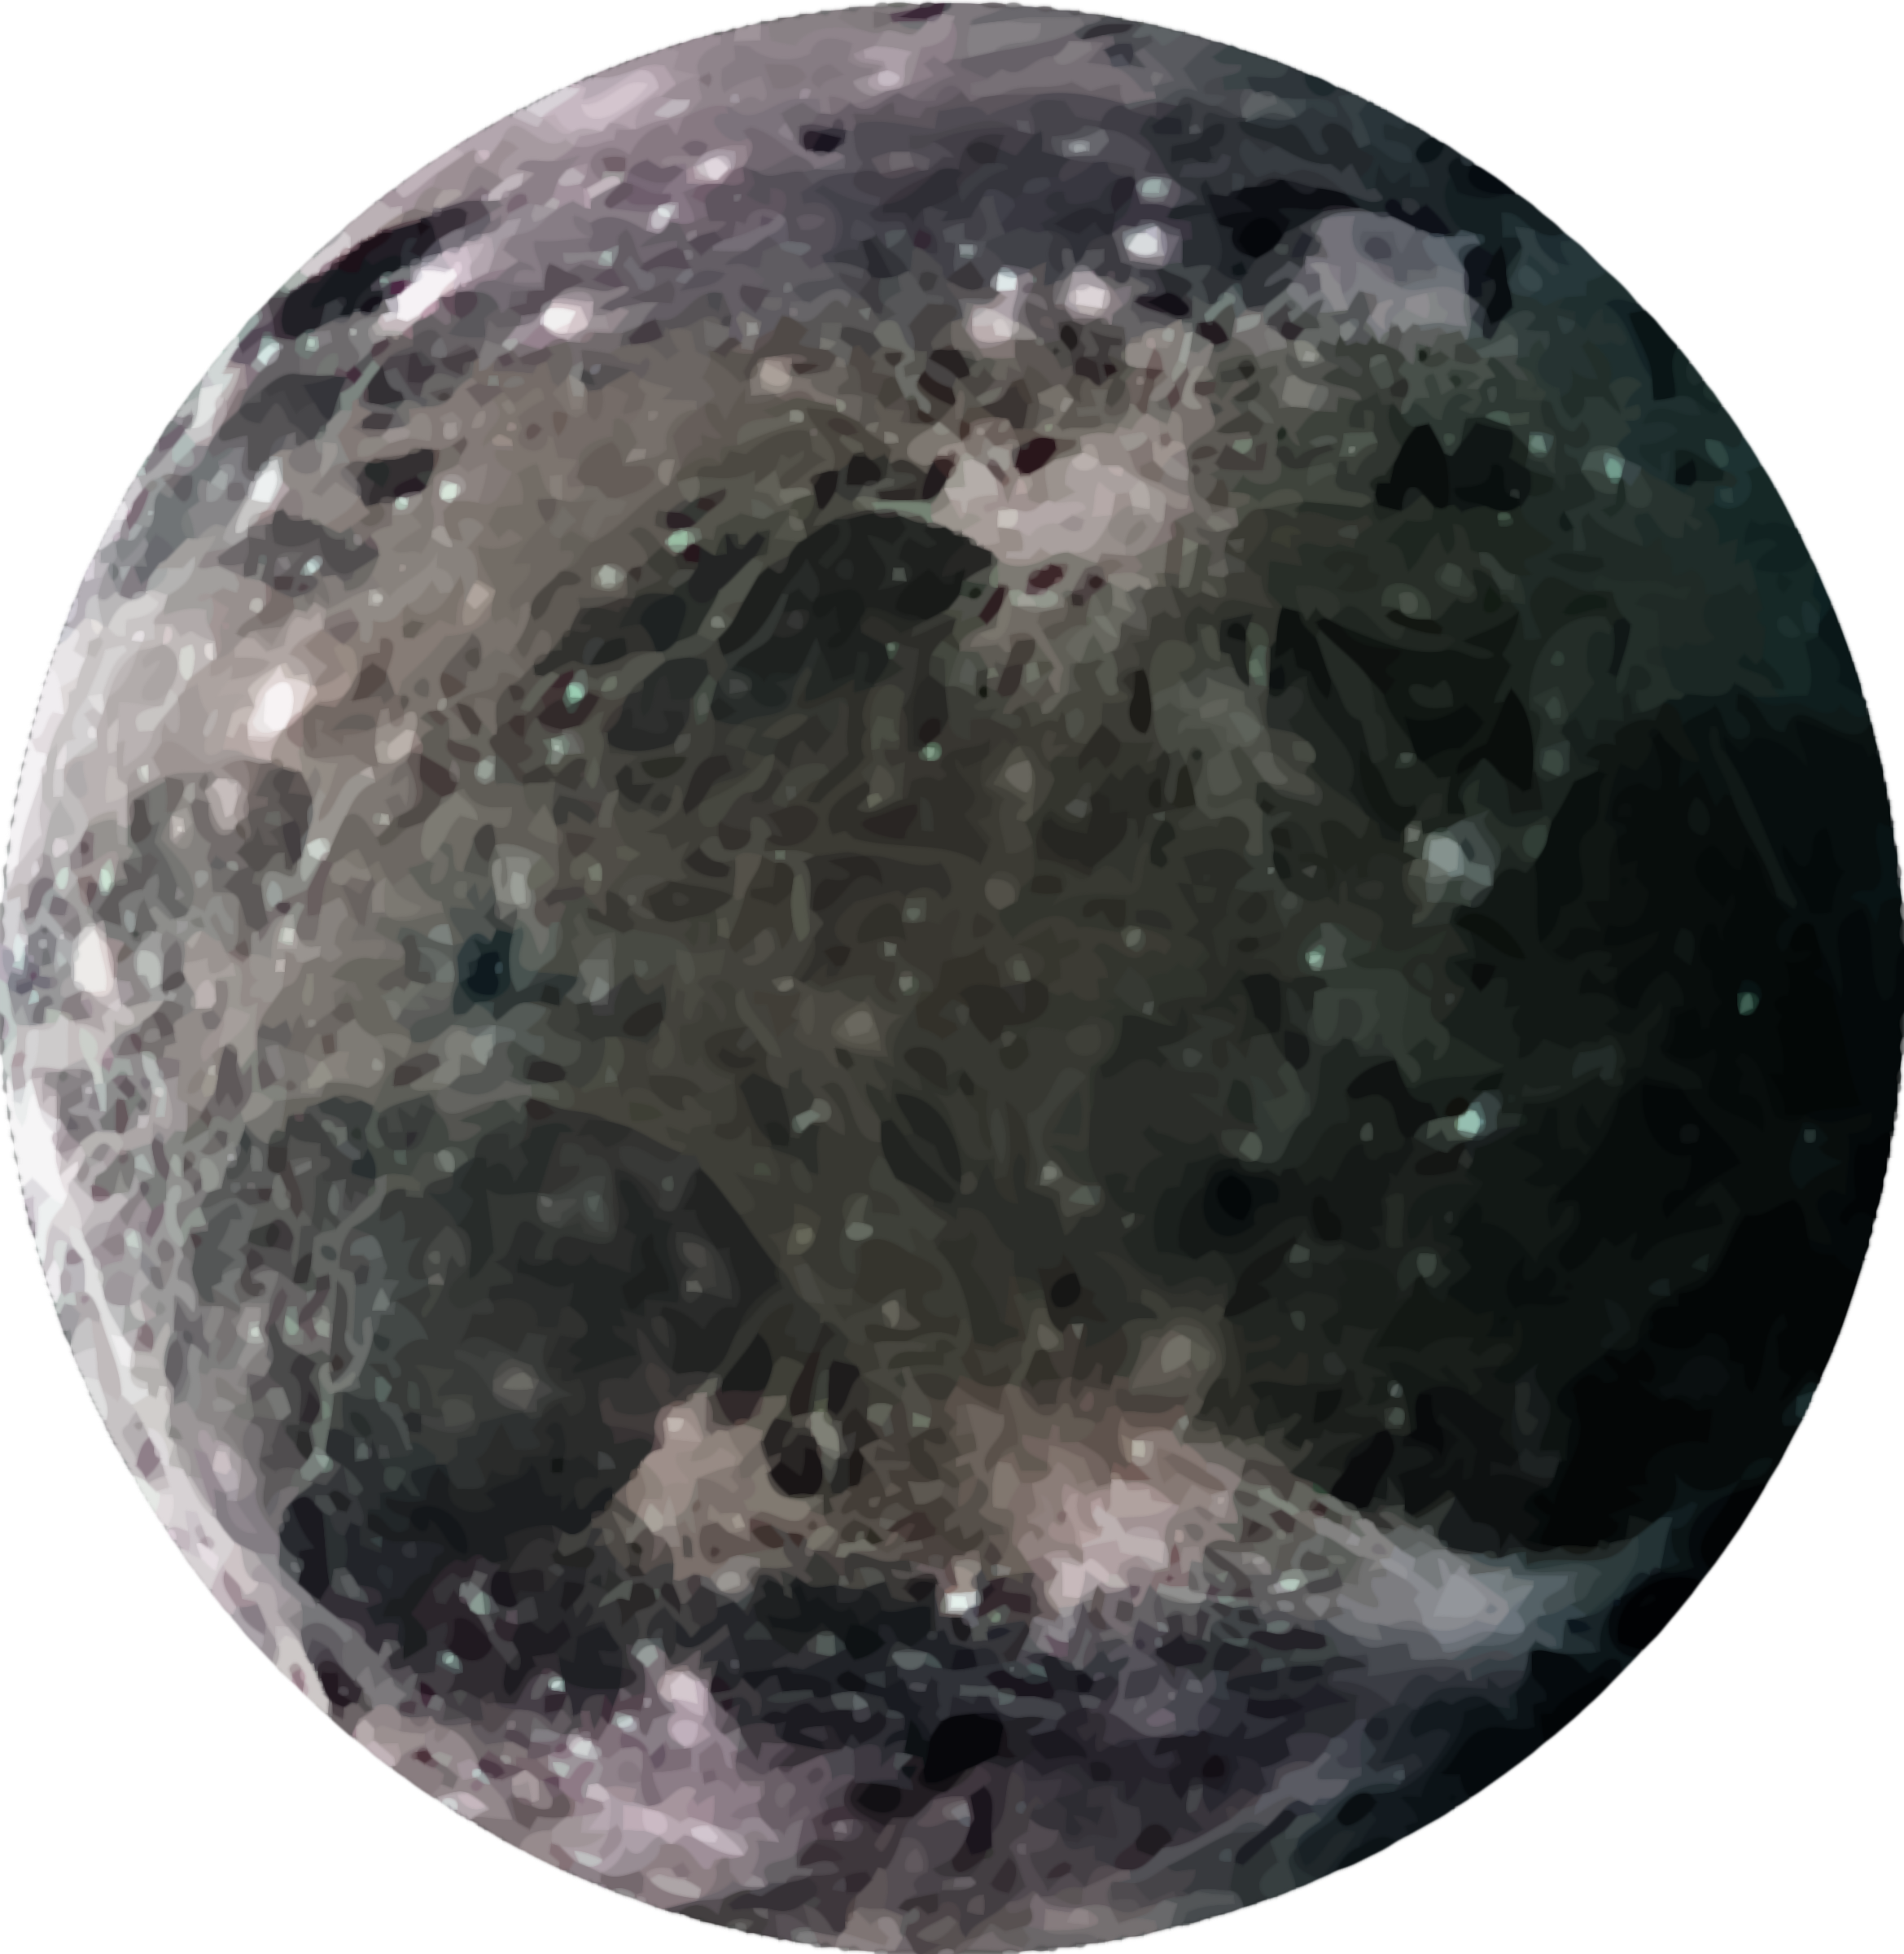 Jupiter's moon Ganymede by Firkin